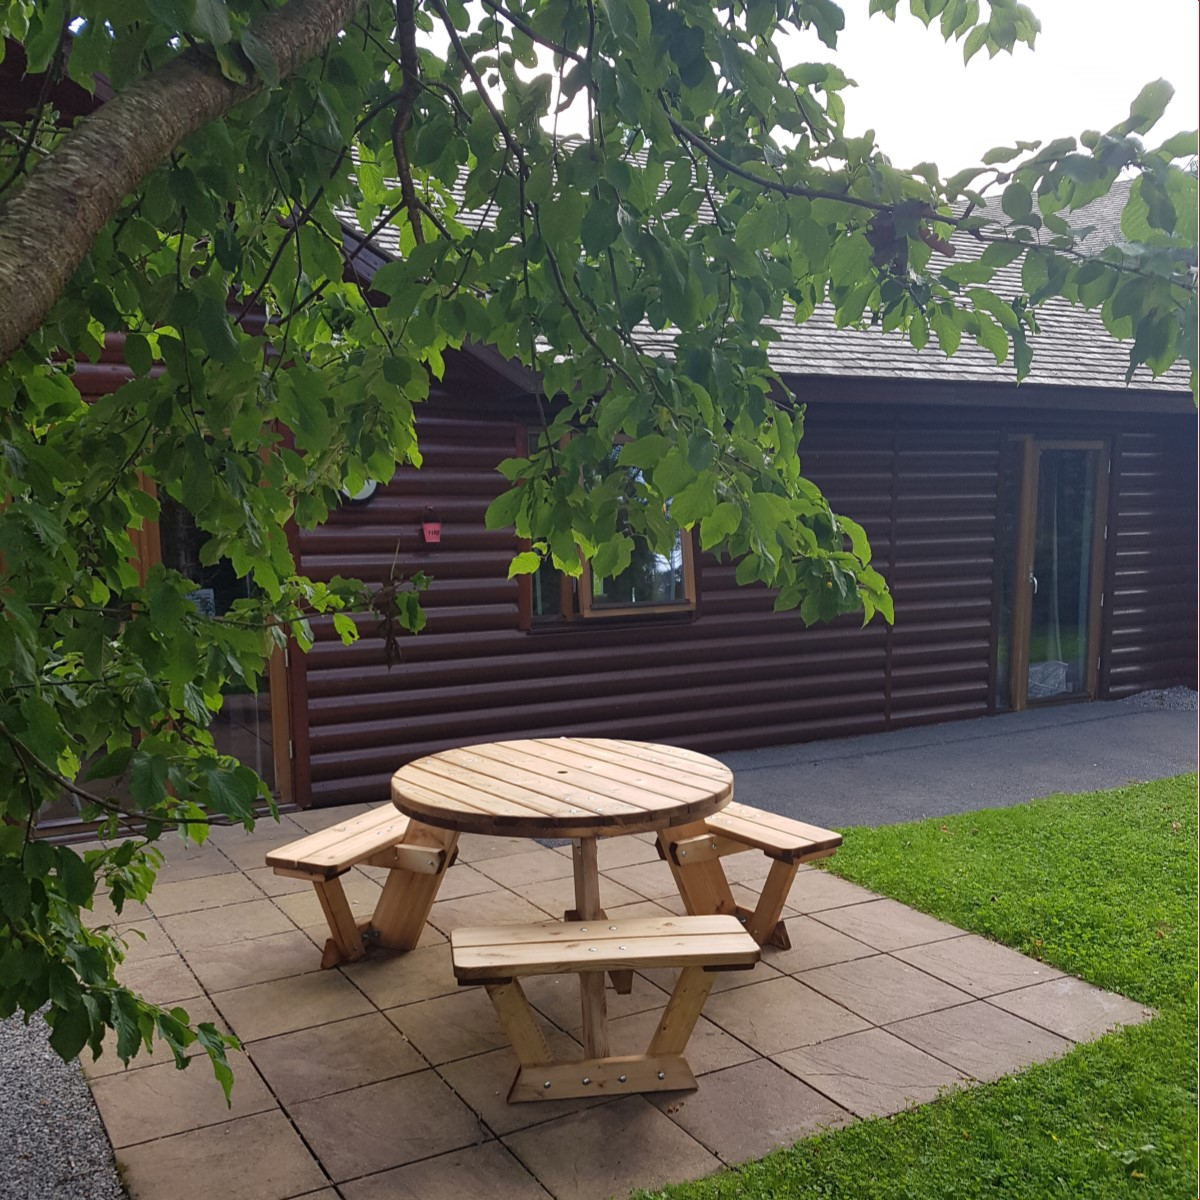 A circular wooden picnic table to seat 6 people on a patio at a holiday park